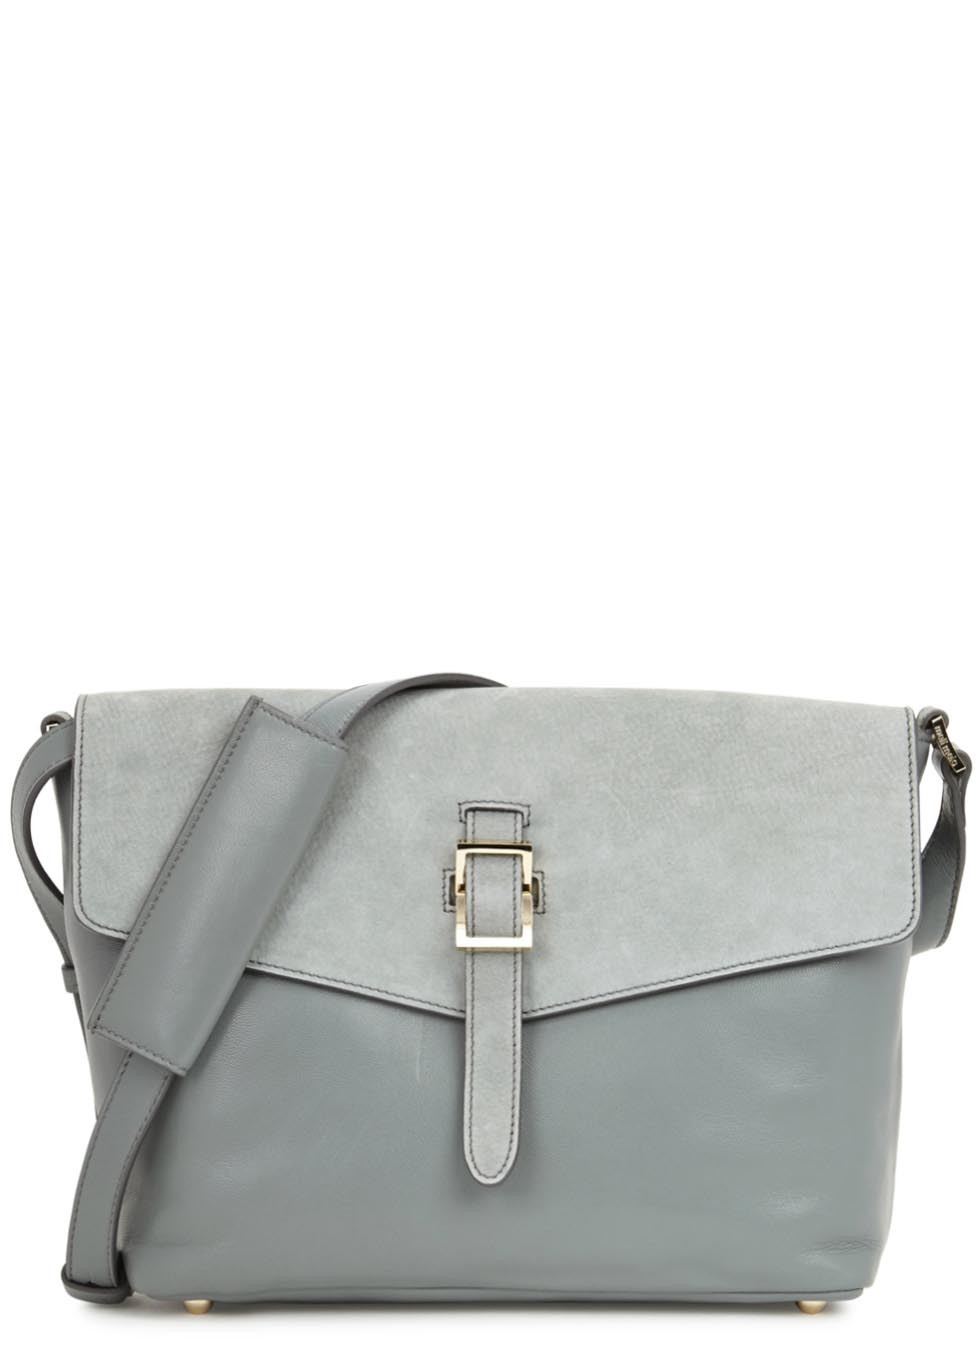 Maisie Medium Grey Leather Shoulder Bag - secondary colour: mid grey; predominant colour: light grey; occasions: casual, creative work; type of pattern: standard; style: shoulder; length: shoulder (tucks under arm); size: standard; material: leather; pattern: plain; finish: plain; wardrobe: investment; season: a/w 2016